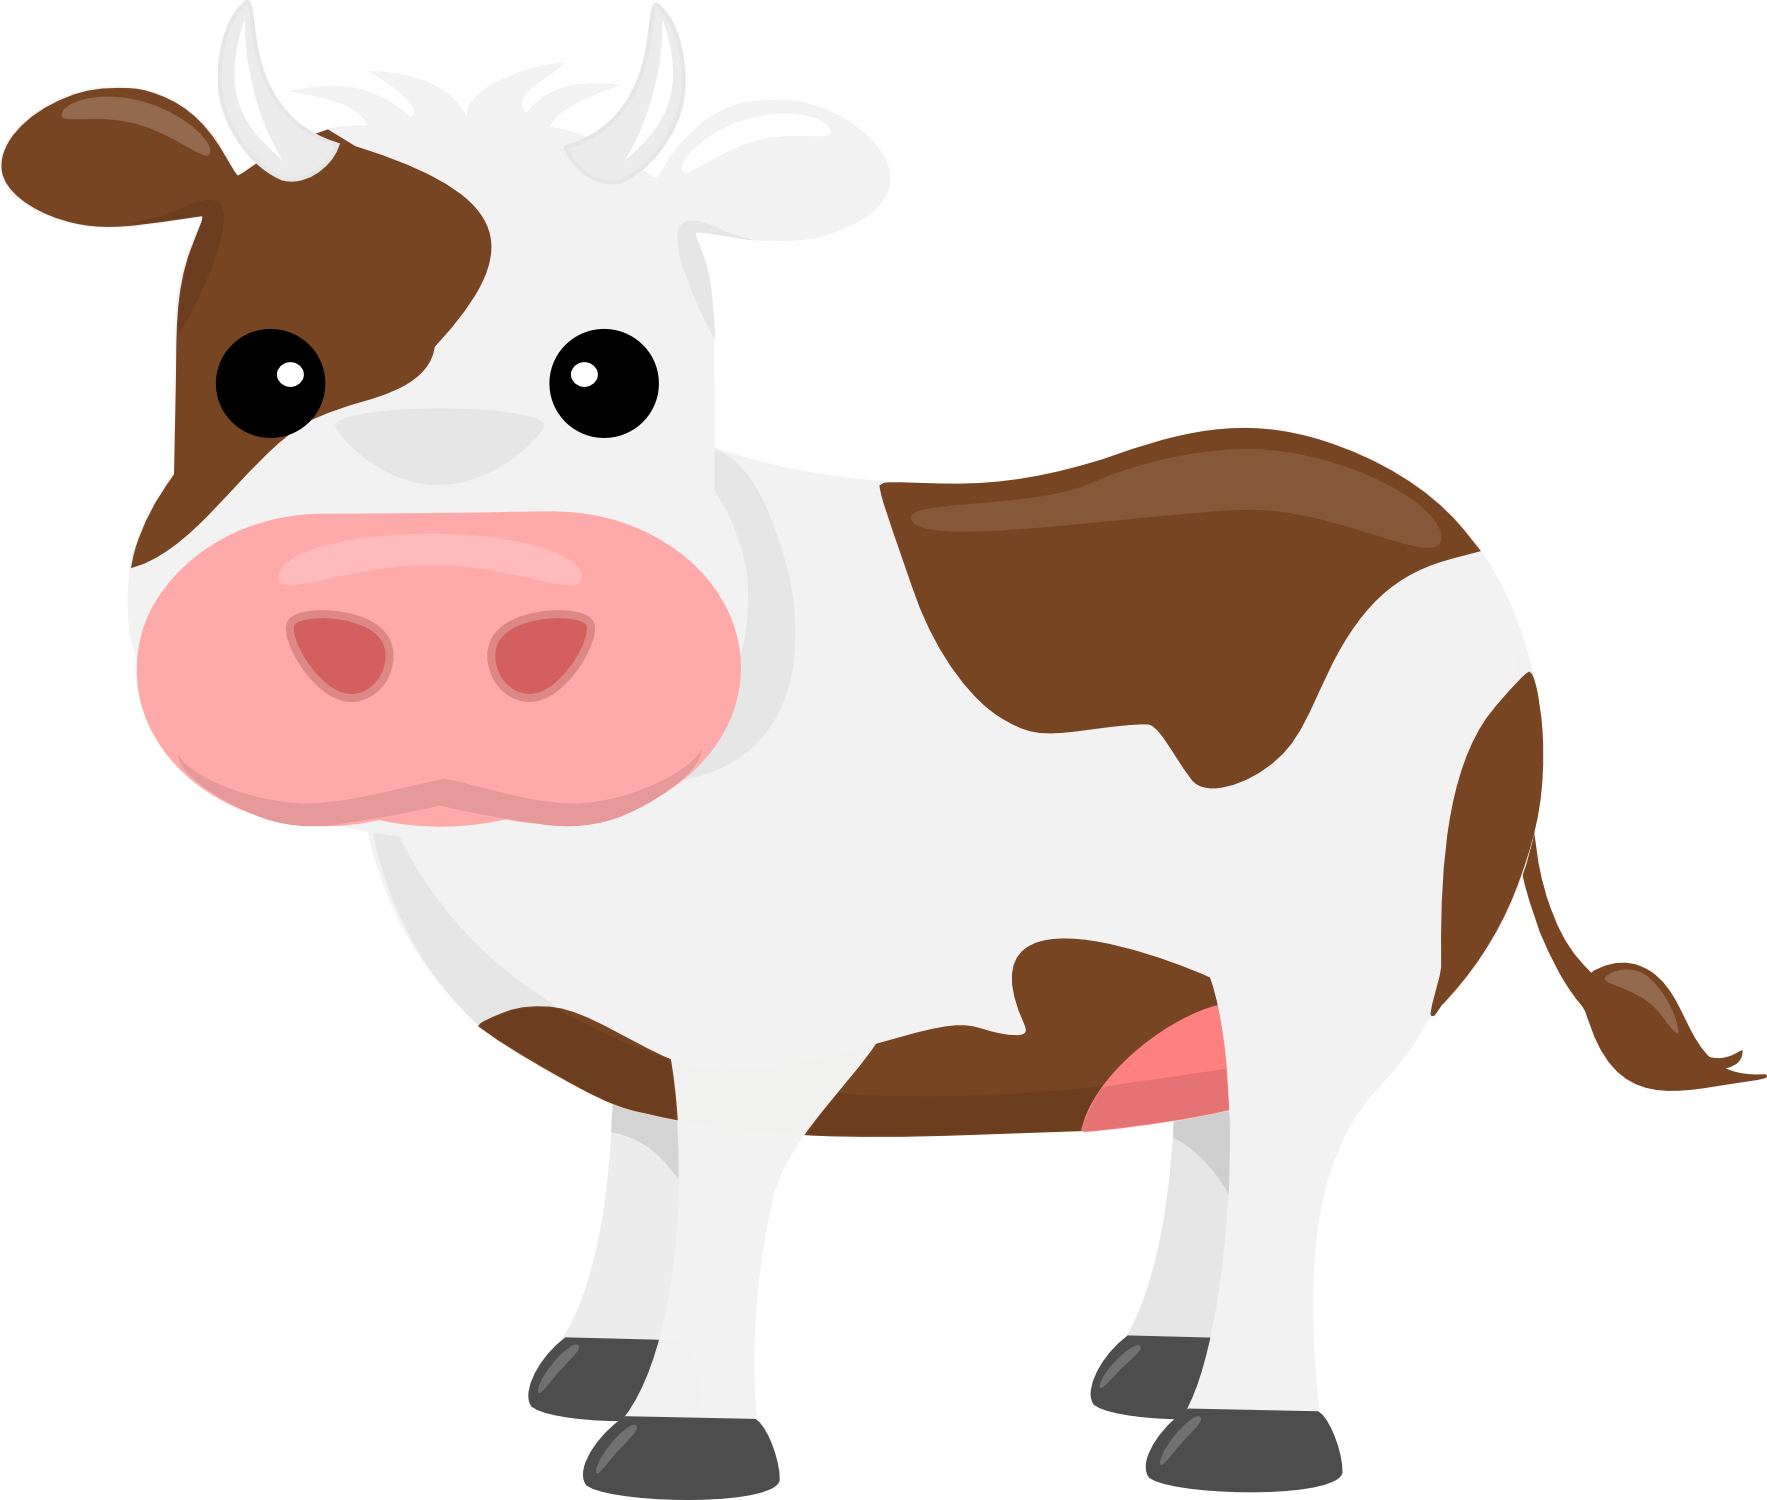 Cow clip art clear background. On the farm scrapbooking